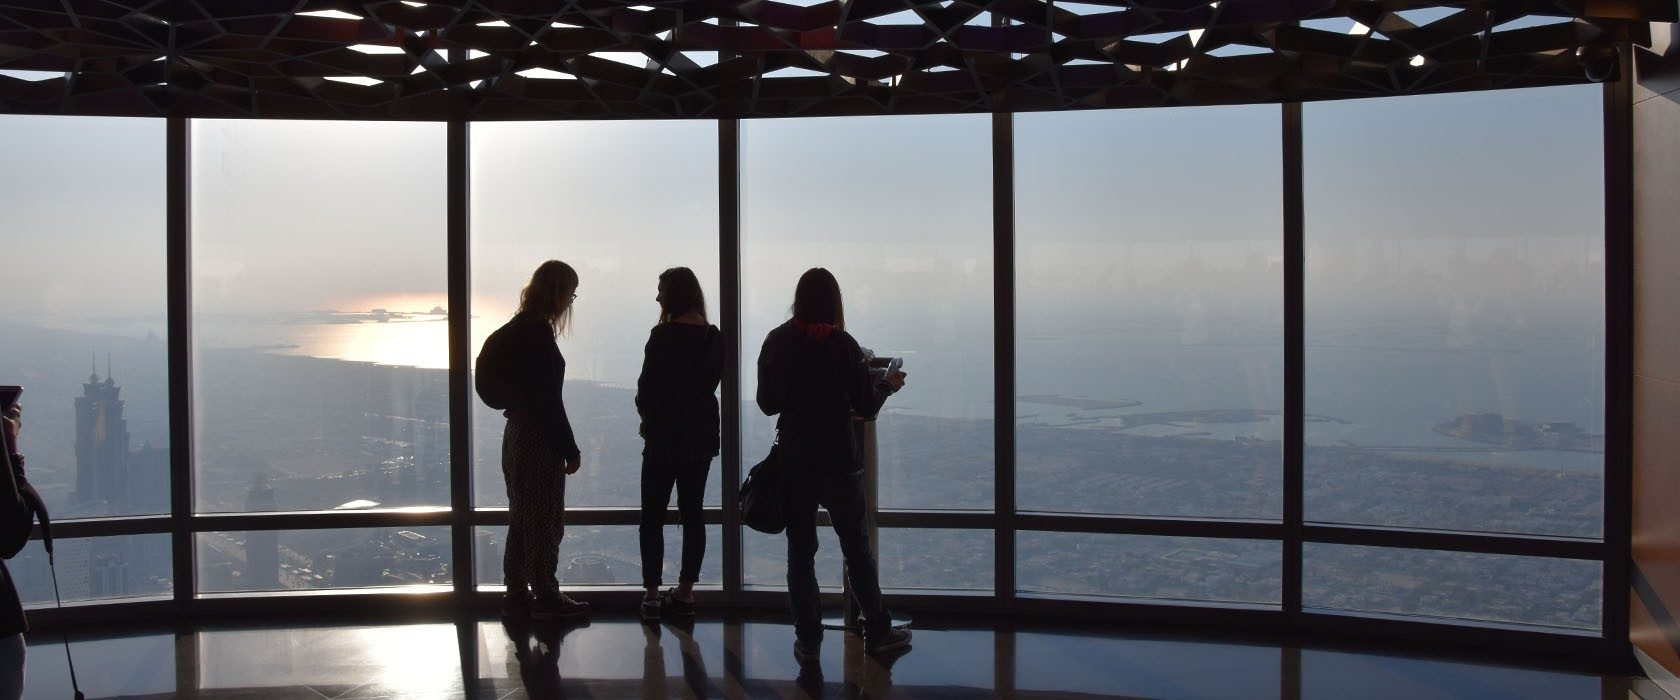 Tickets for At The Top, Burj Khalifa SKY (148th floor)